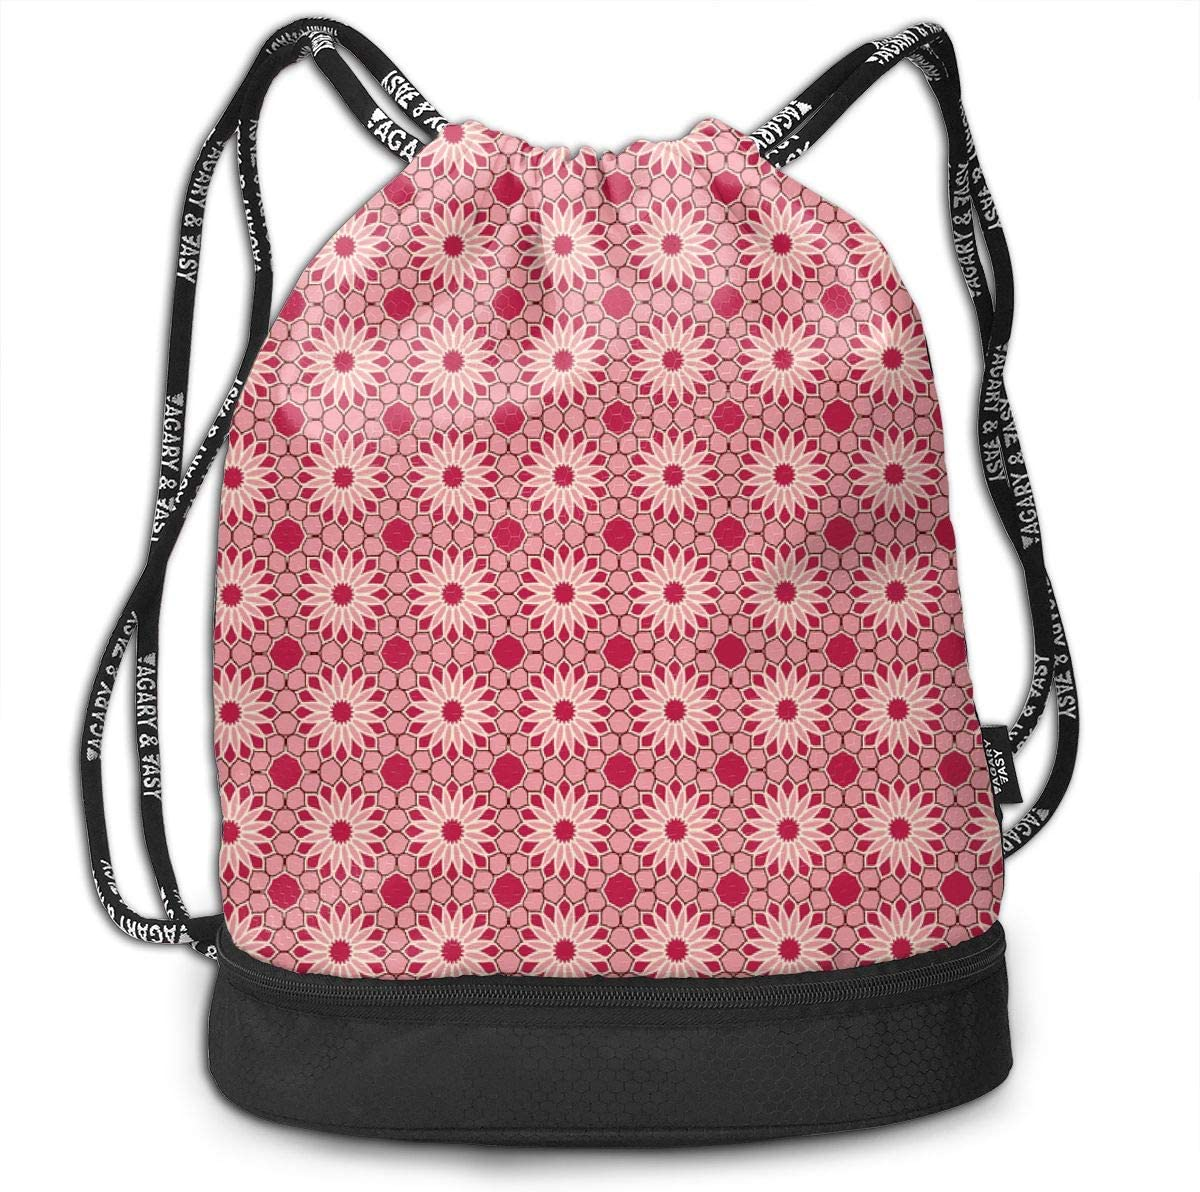 Rock Daisies Rose Red Drawstring Backpack Sports Athletic Gym Cinch Sack String Storage Bags for Hiking Travel Beach